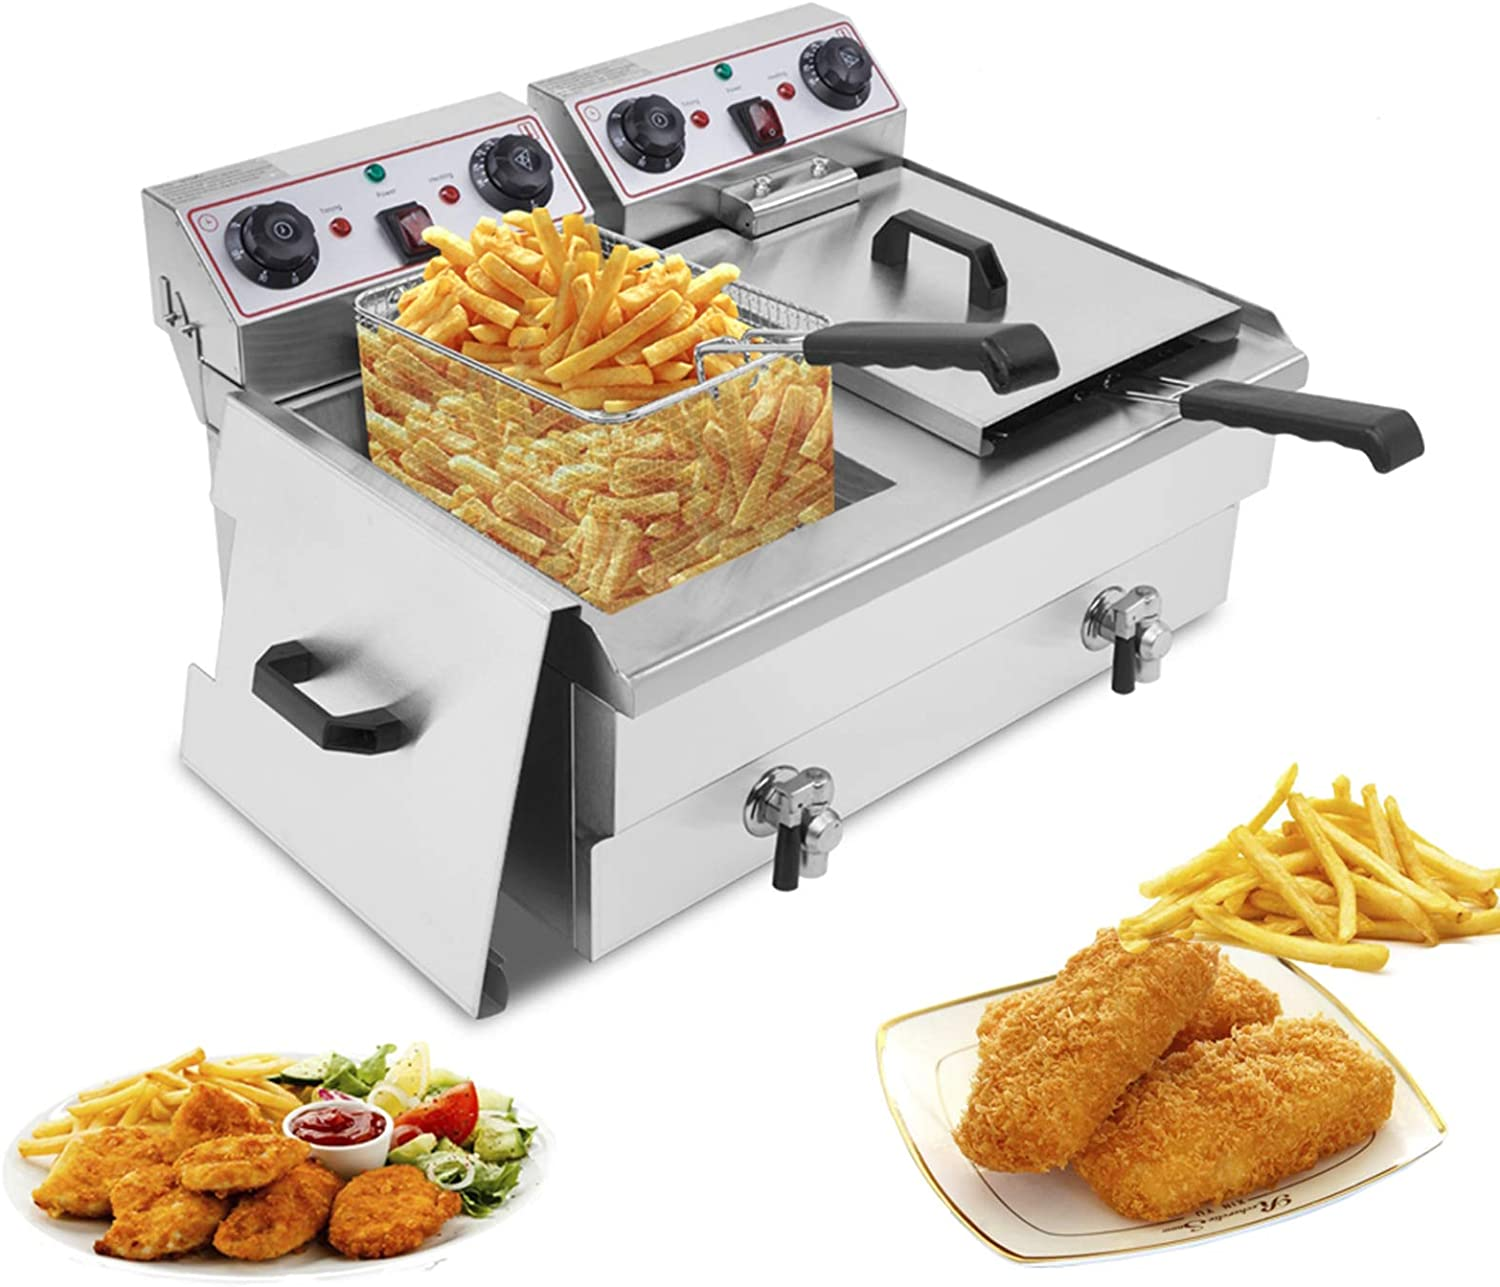 16.9QT / 16L Stainless Steel Faucet Double Tank Deep Fryer 3400W French Fry Deep Fat Fryer with Basket, Total Capacity 24.9QT/23.6L (16L)